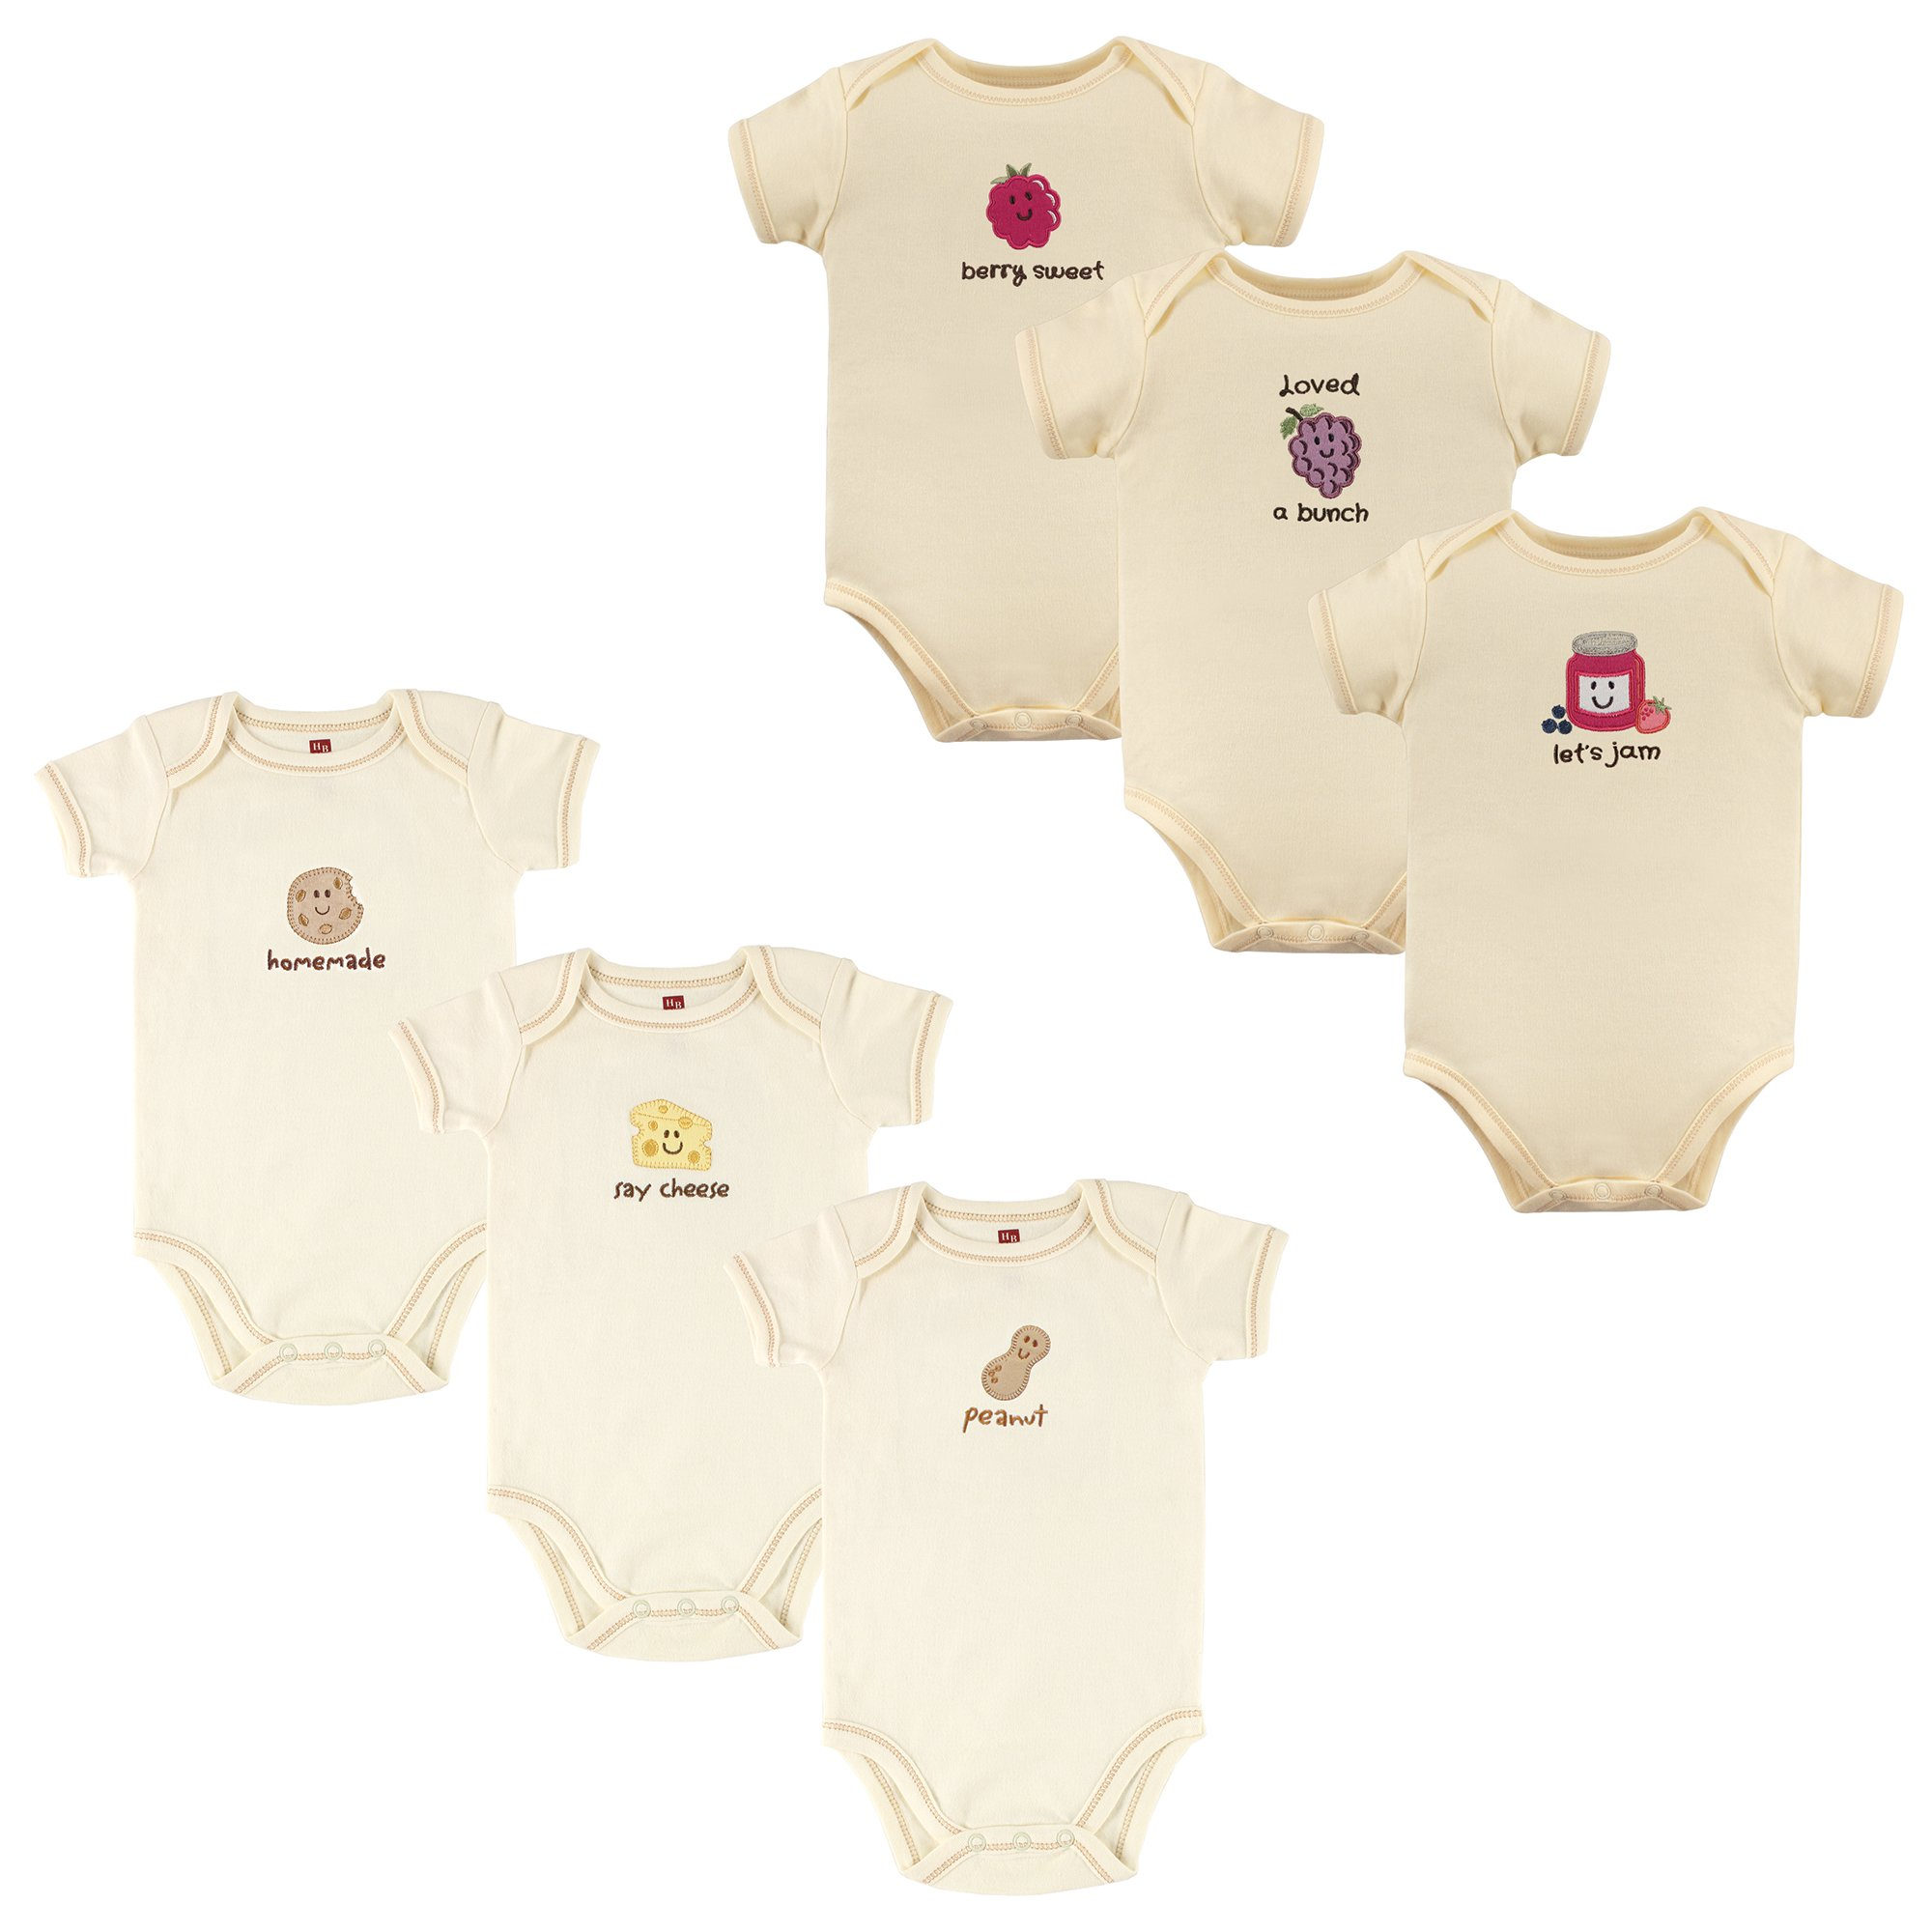 Touched by Nature Baby Organic Cotton Bodysuits, Peanut Jam 6Pk, 6-9 Months (9M)